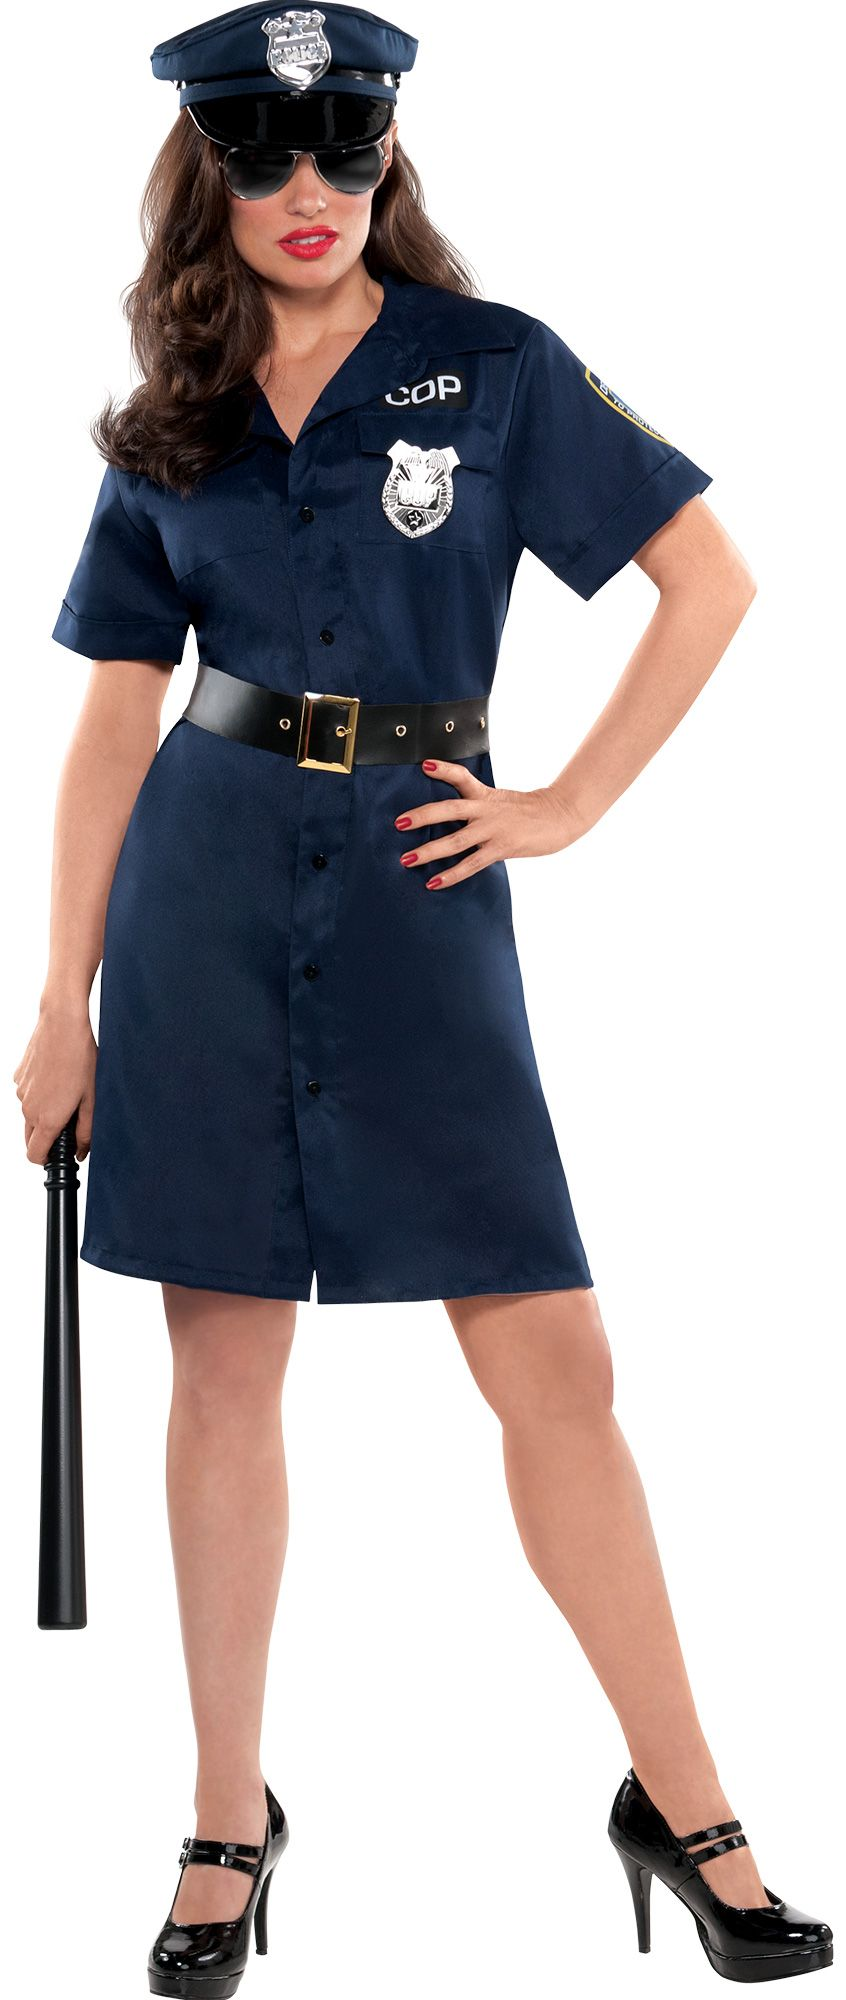 Create Your Look - Women's Police Officer